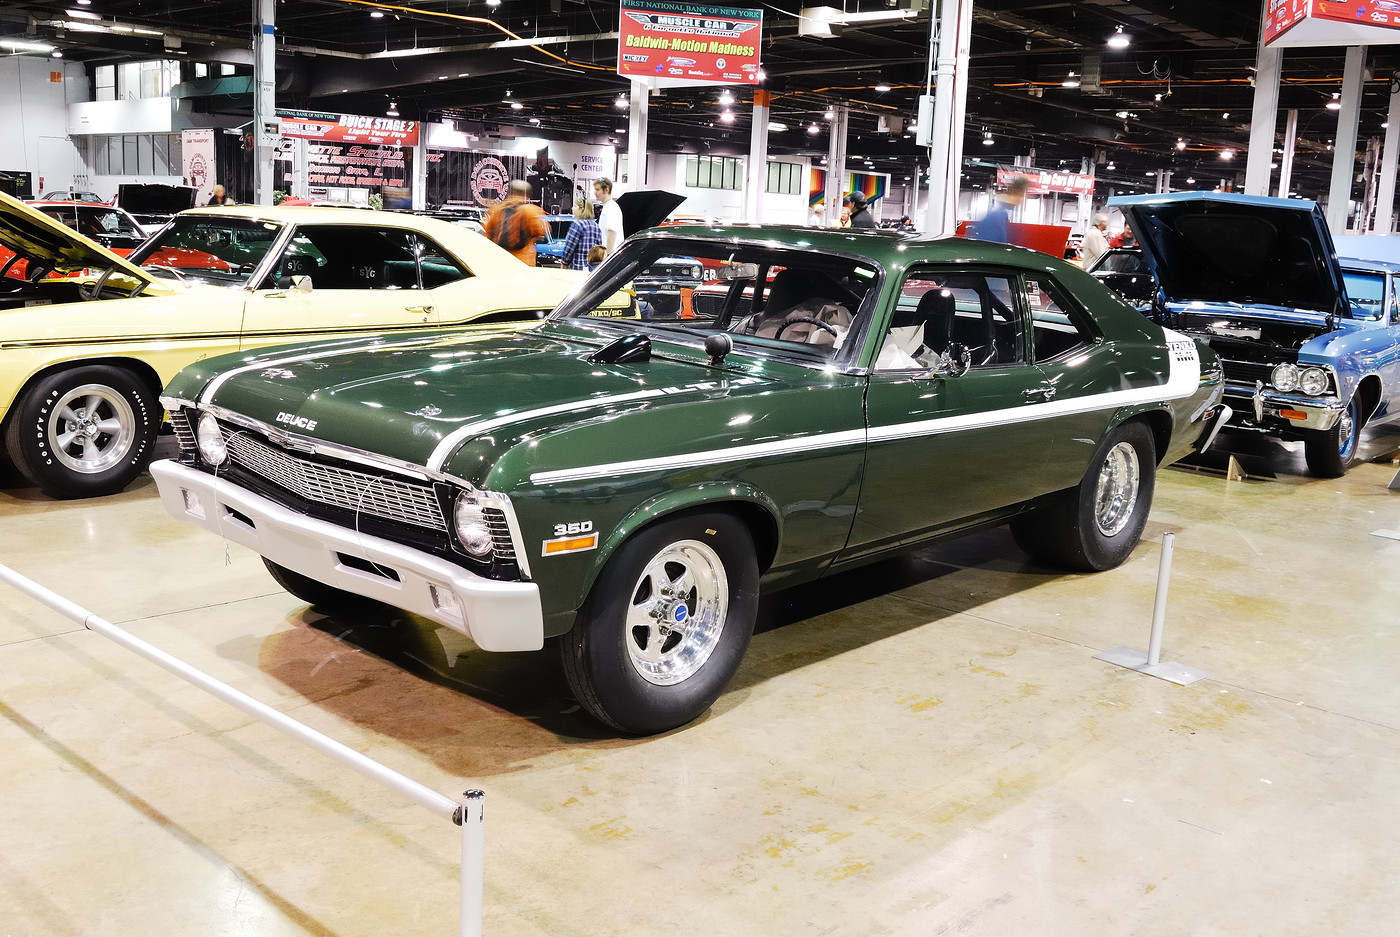 Yenko Chevy Nova at the 2010 Muscle Car and Corvette Show